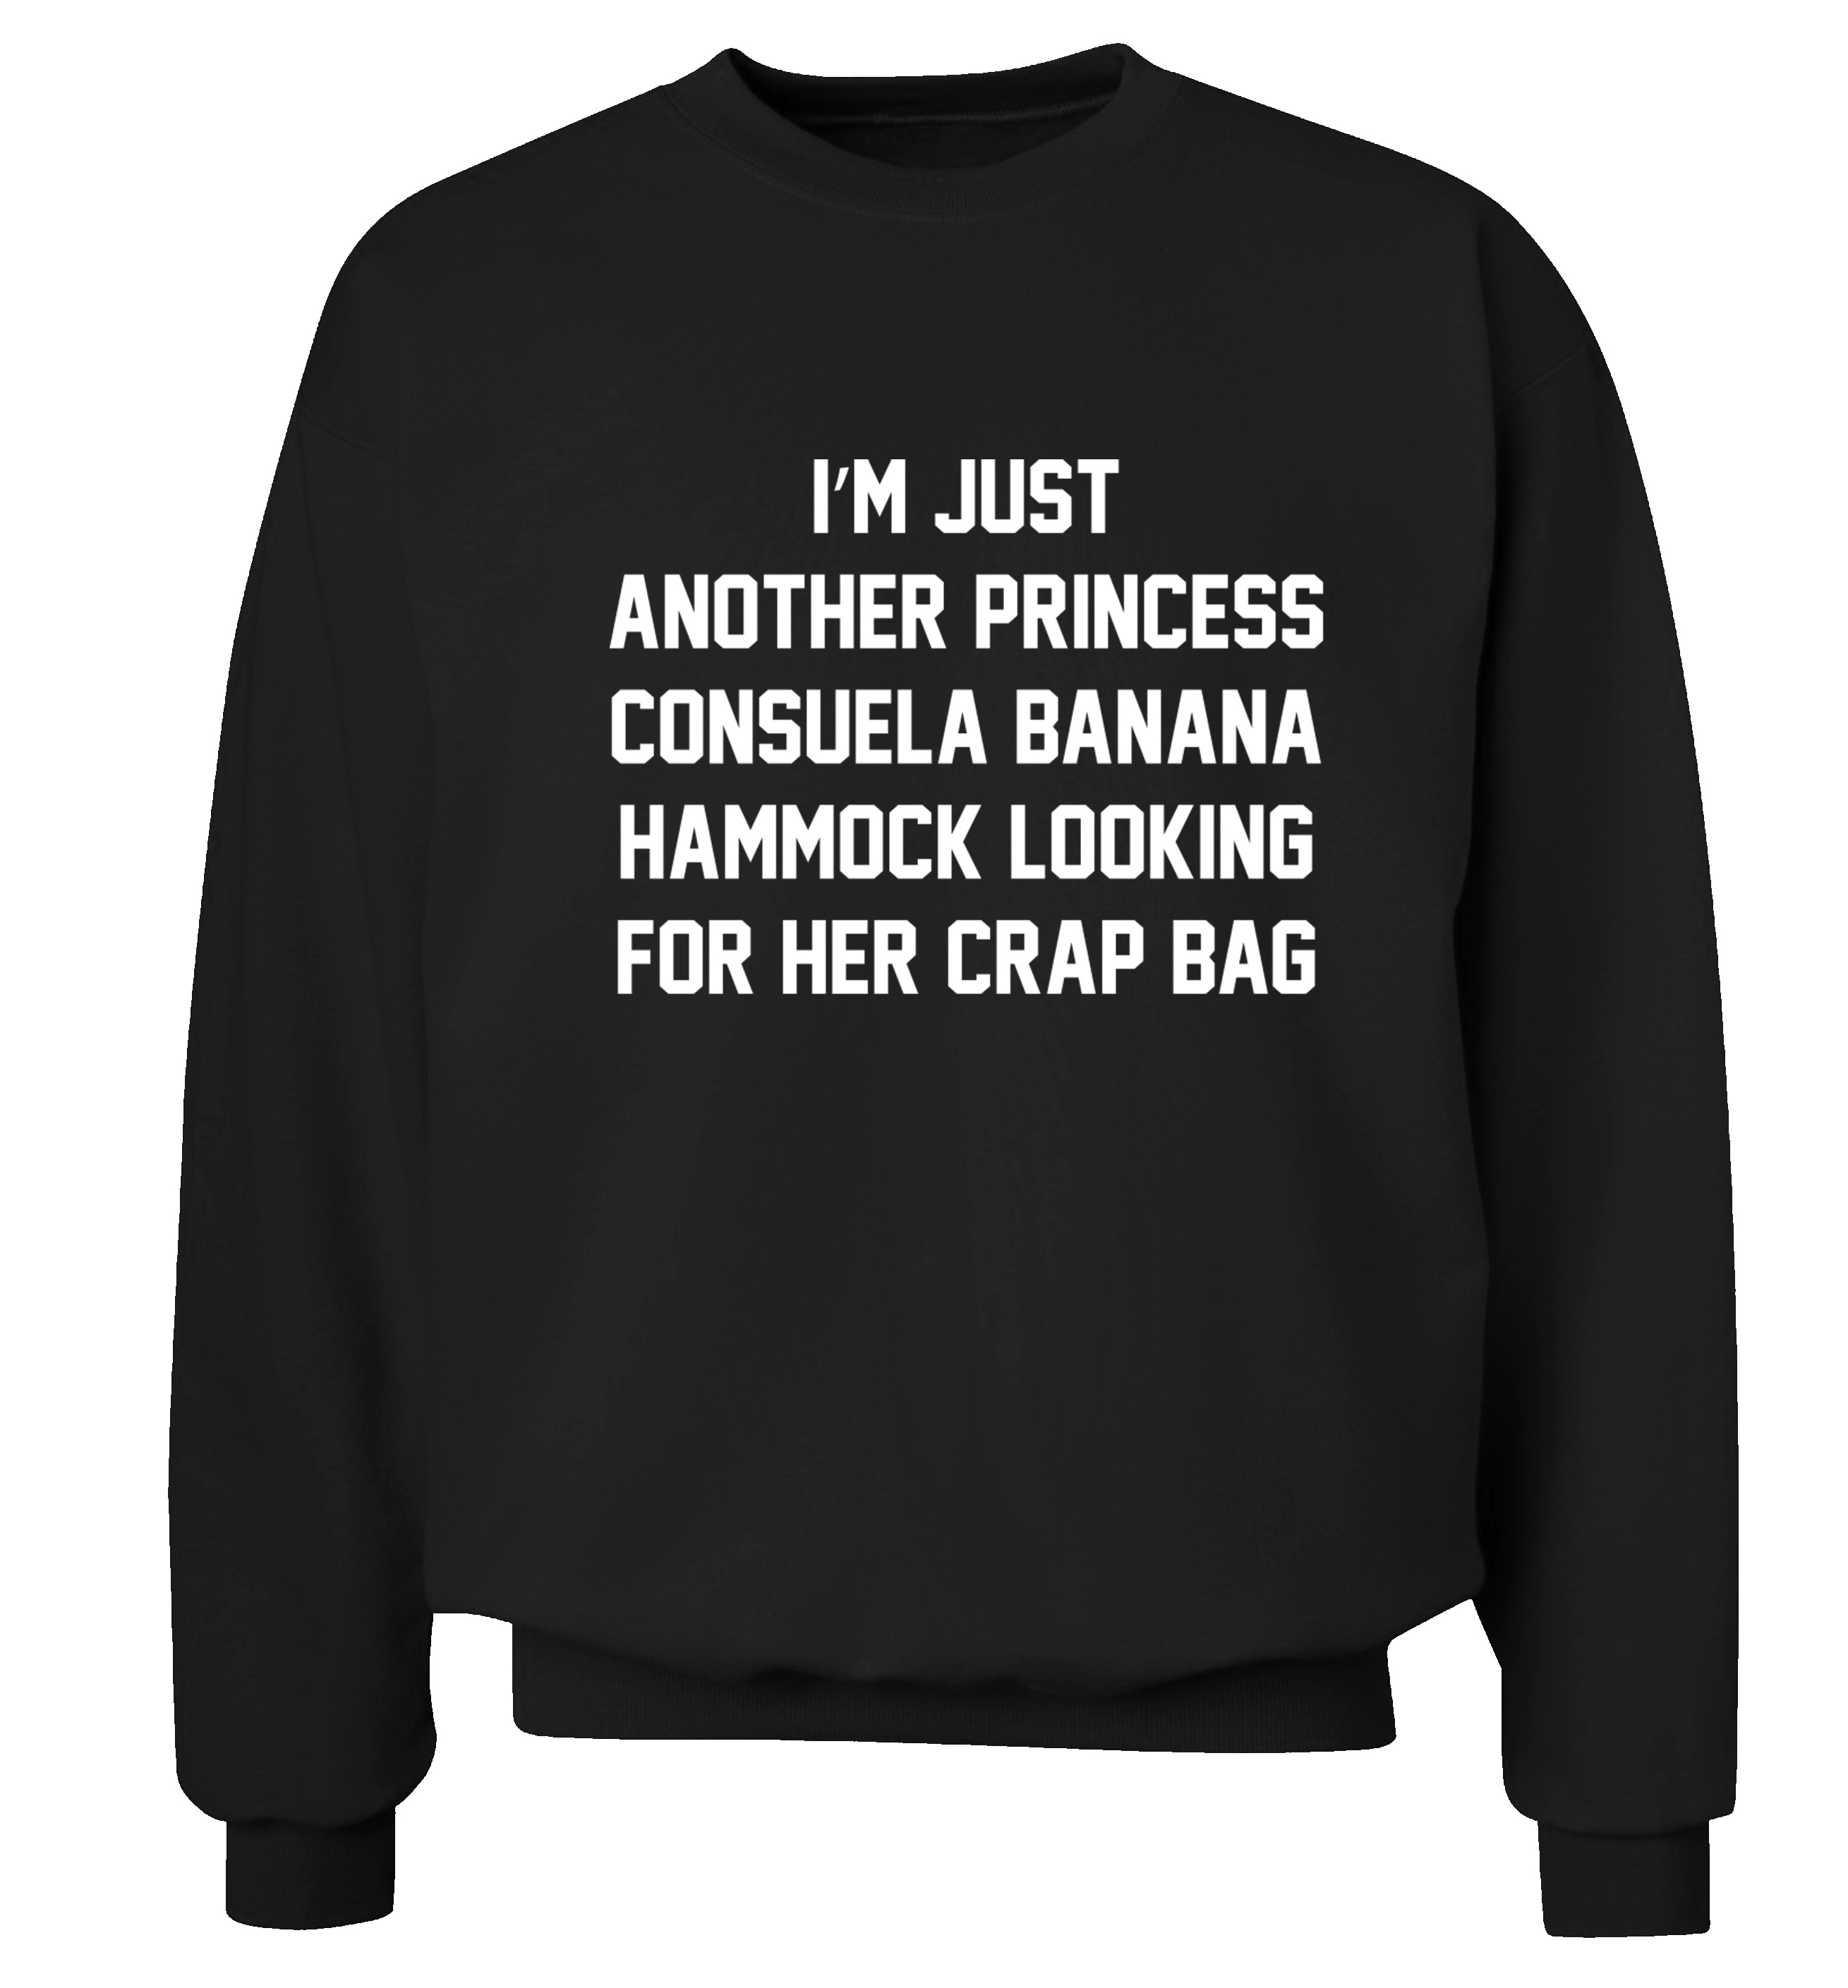 i u0027m just another princess consuela banana hammock looking for her crap bag jumper friends i u0027m just another princess consuela banana hammock looking for her      rh   floxcreative storenvy